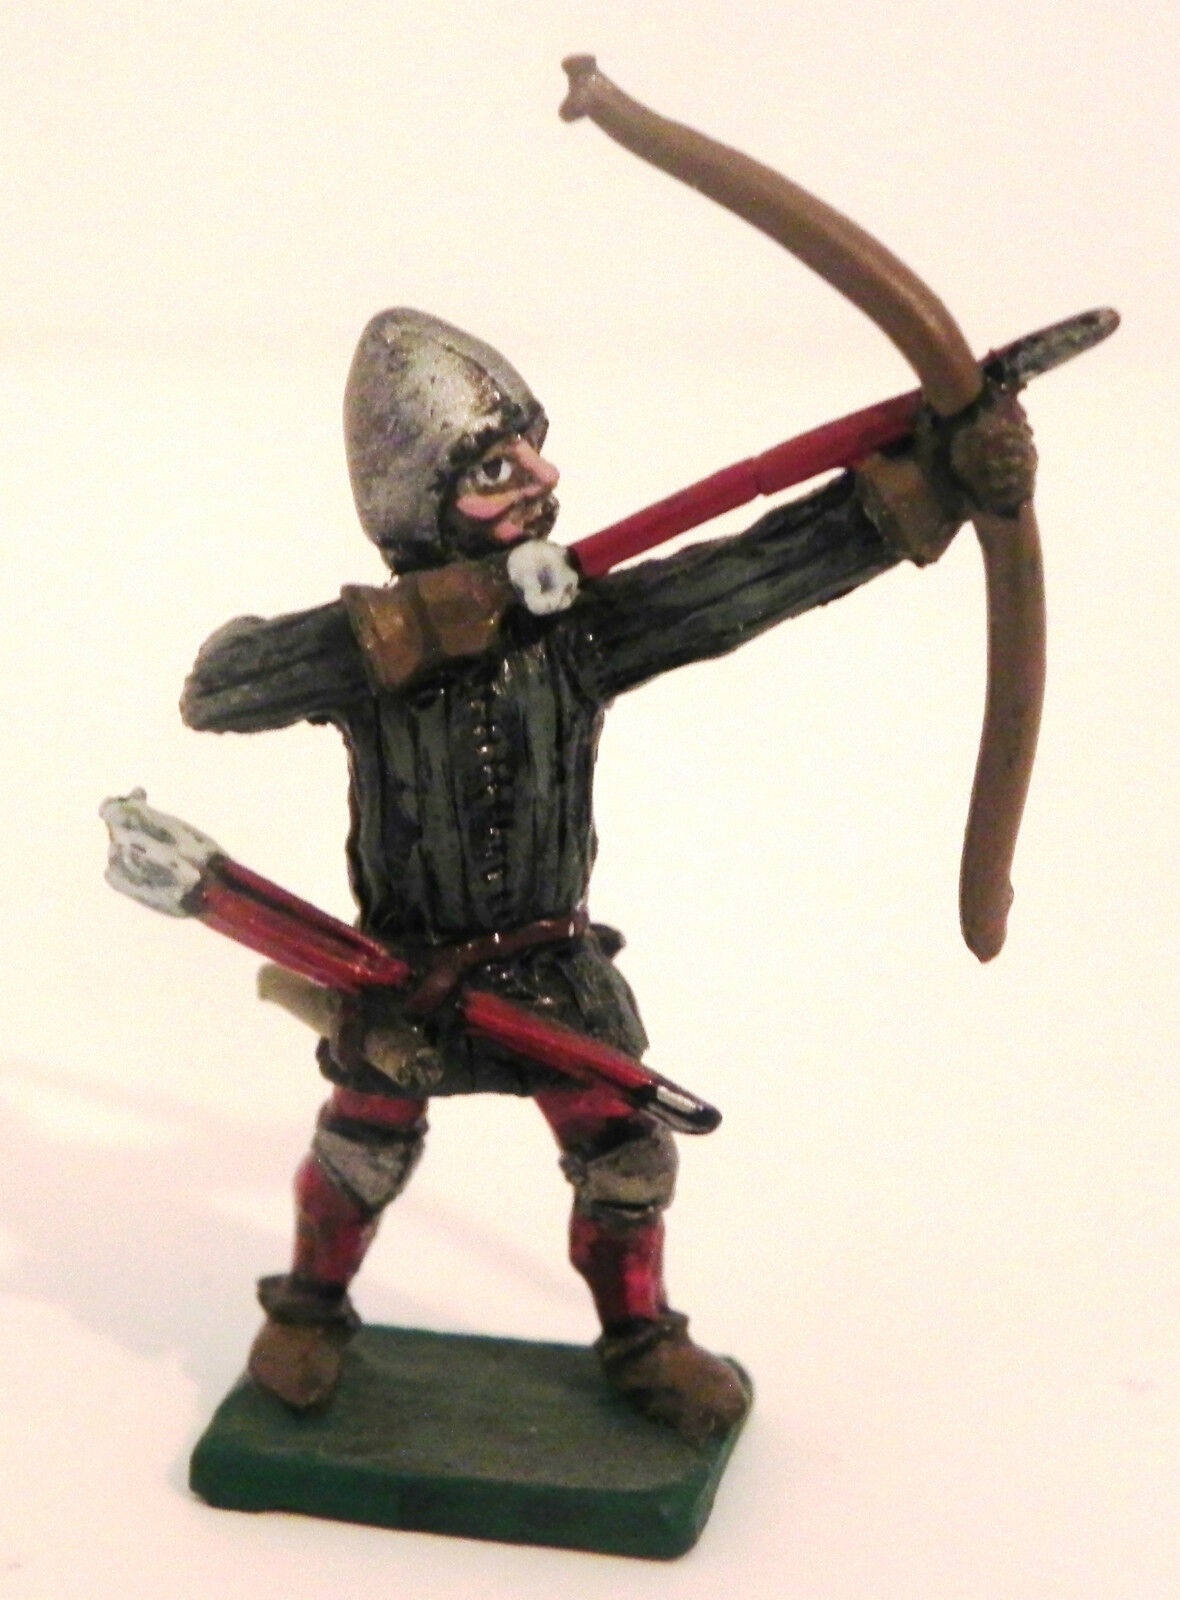 Archer Soldier Miniature Medieval Toy Soldier Figurine Diorama Hand Painted